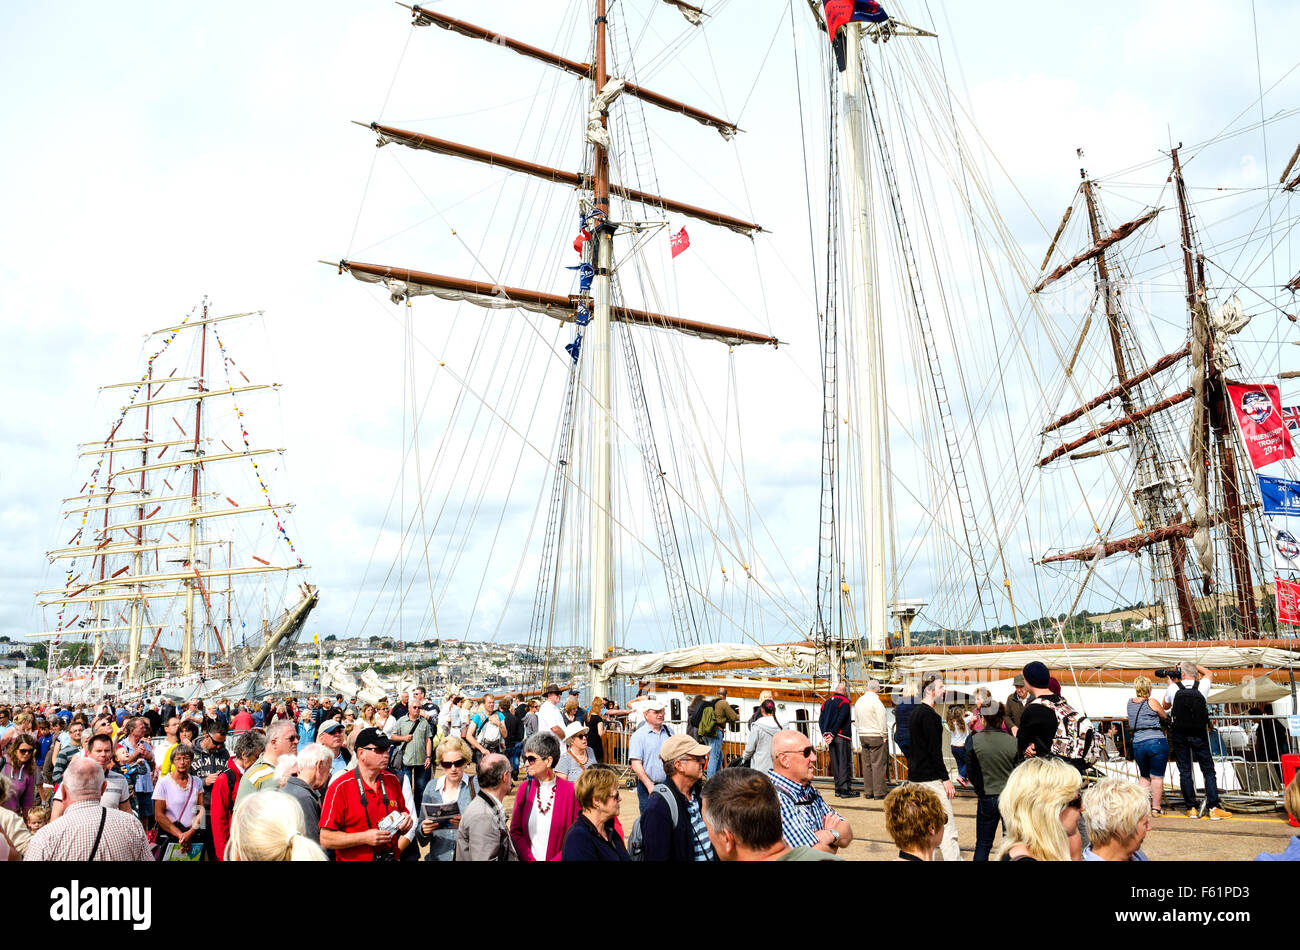 """Crowds admire the vessels at the """" Tall Ships """" event in Falmouth, Cornwall, UK Stock Photo"""